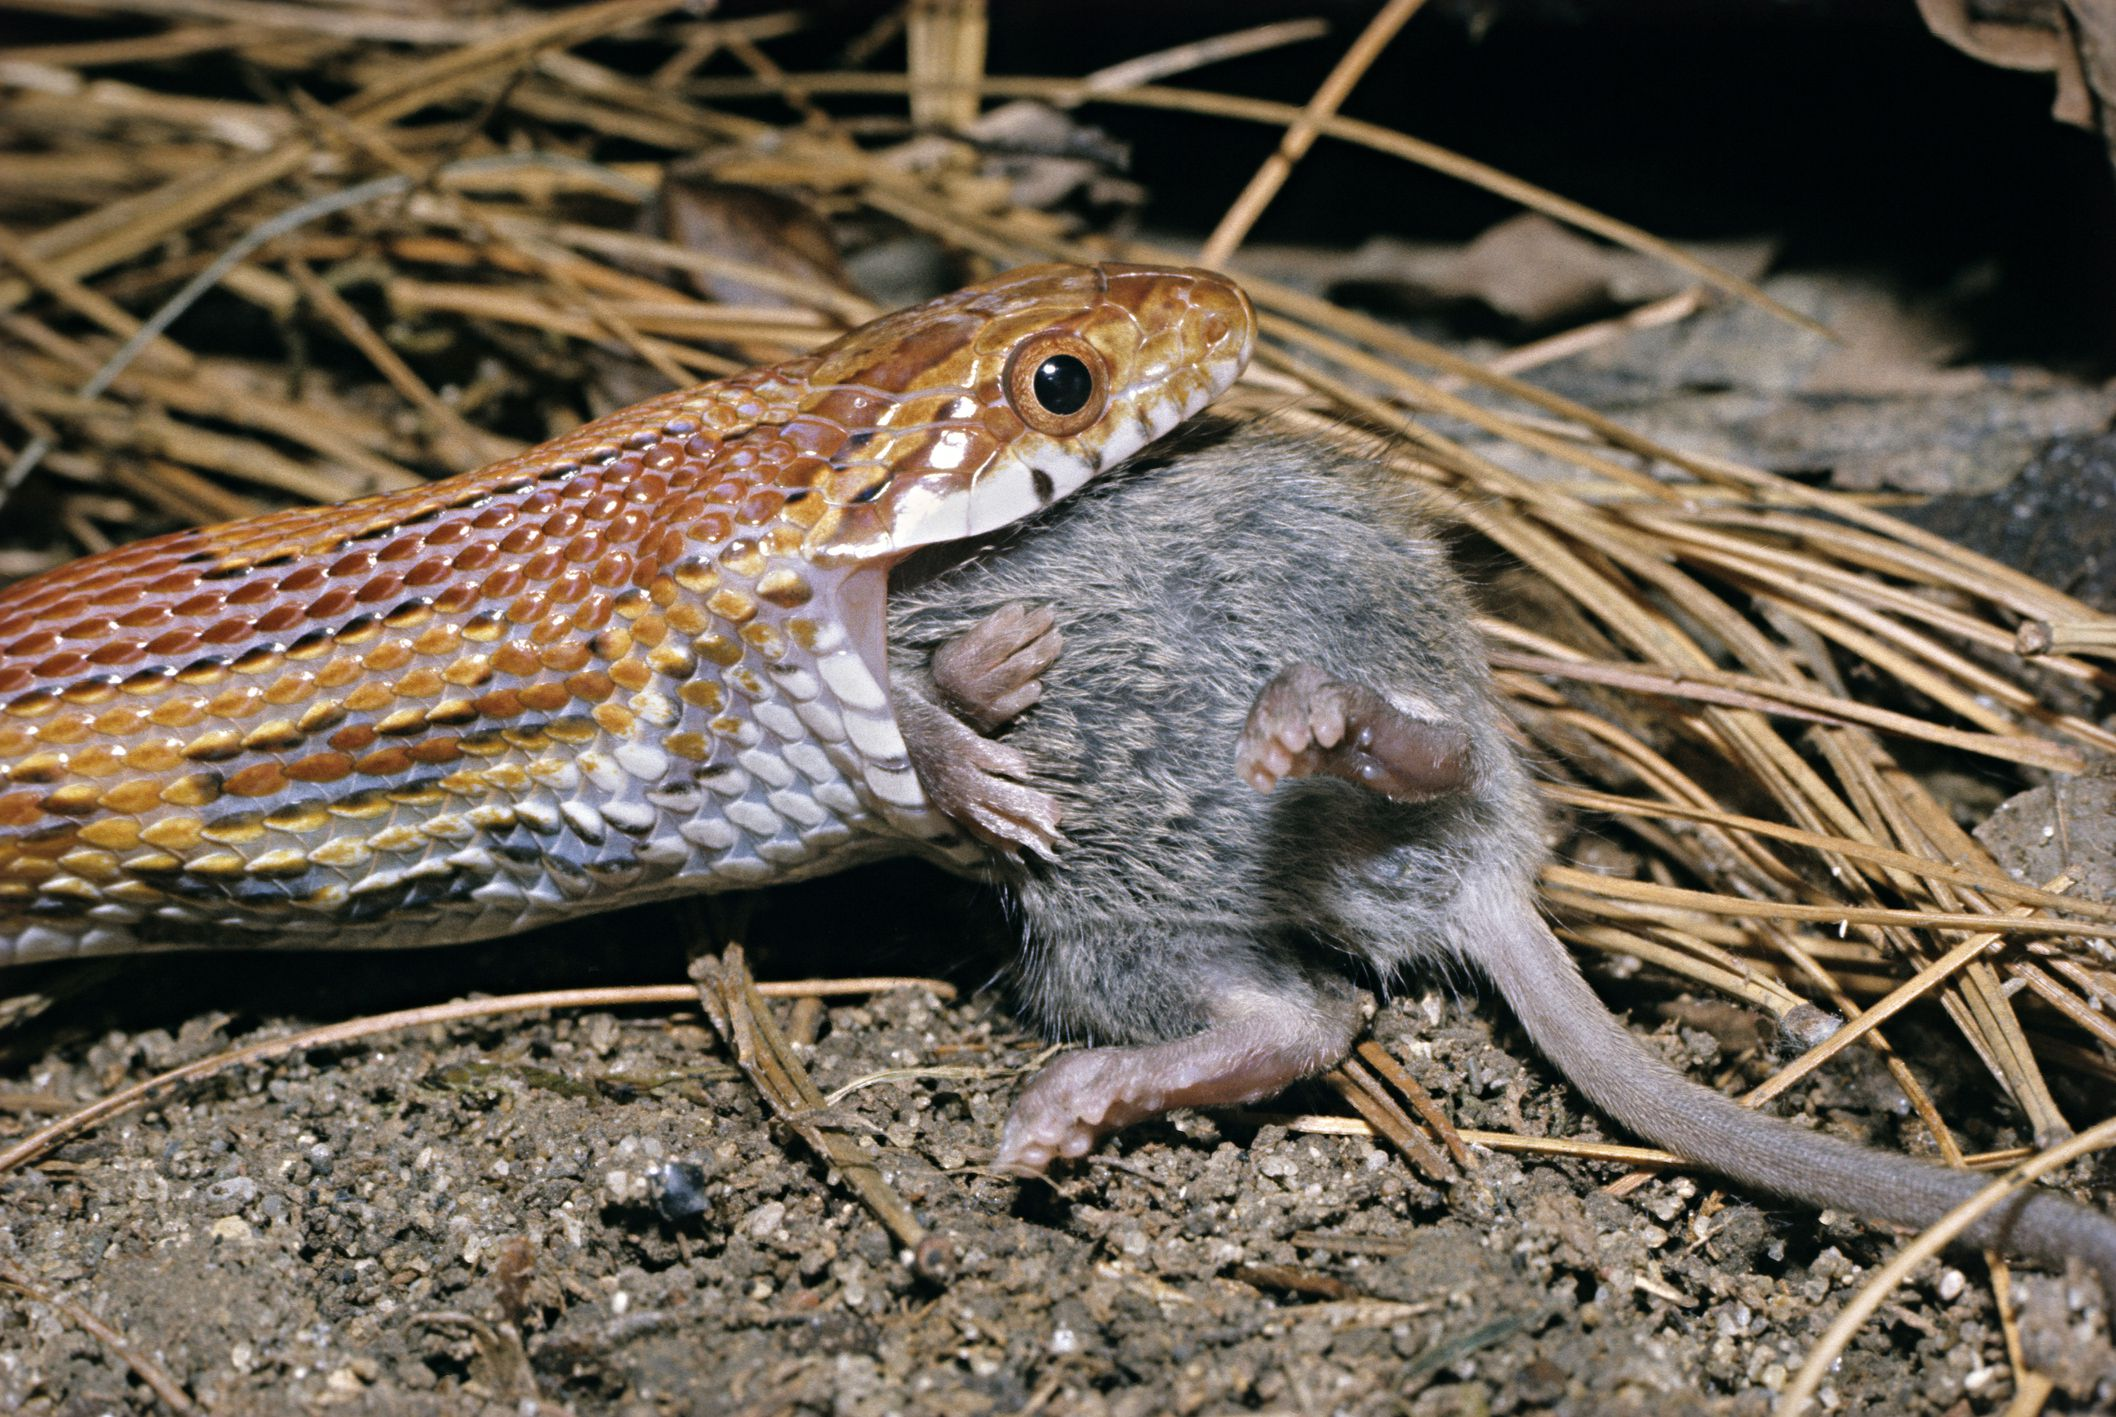 How To Feed Frozen Mice To Pet Snakes Feeding Snakes Pre Killed Prey